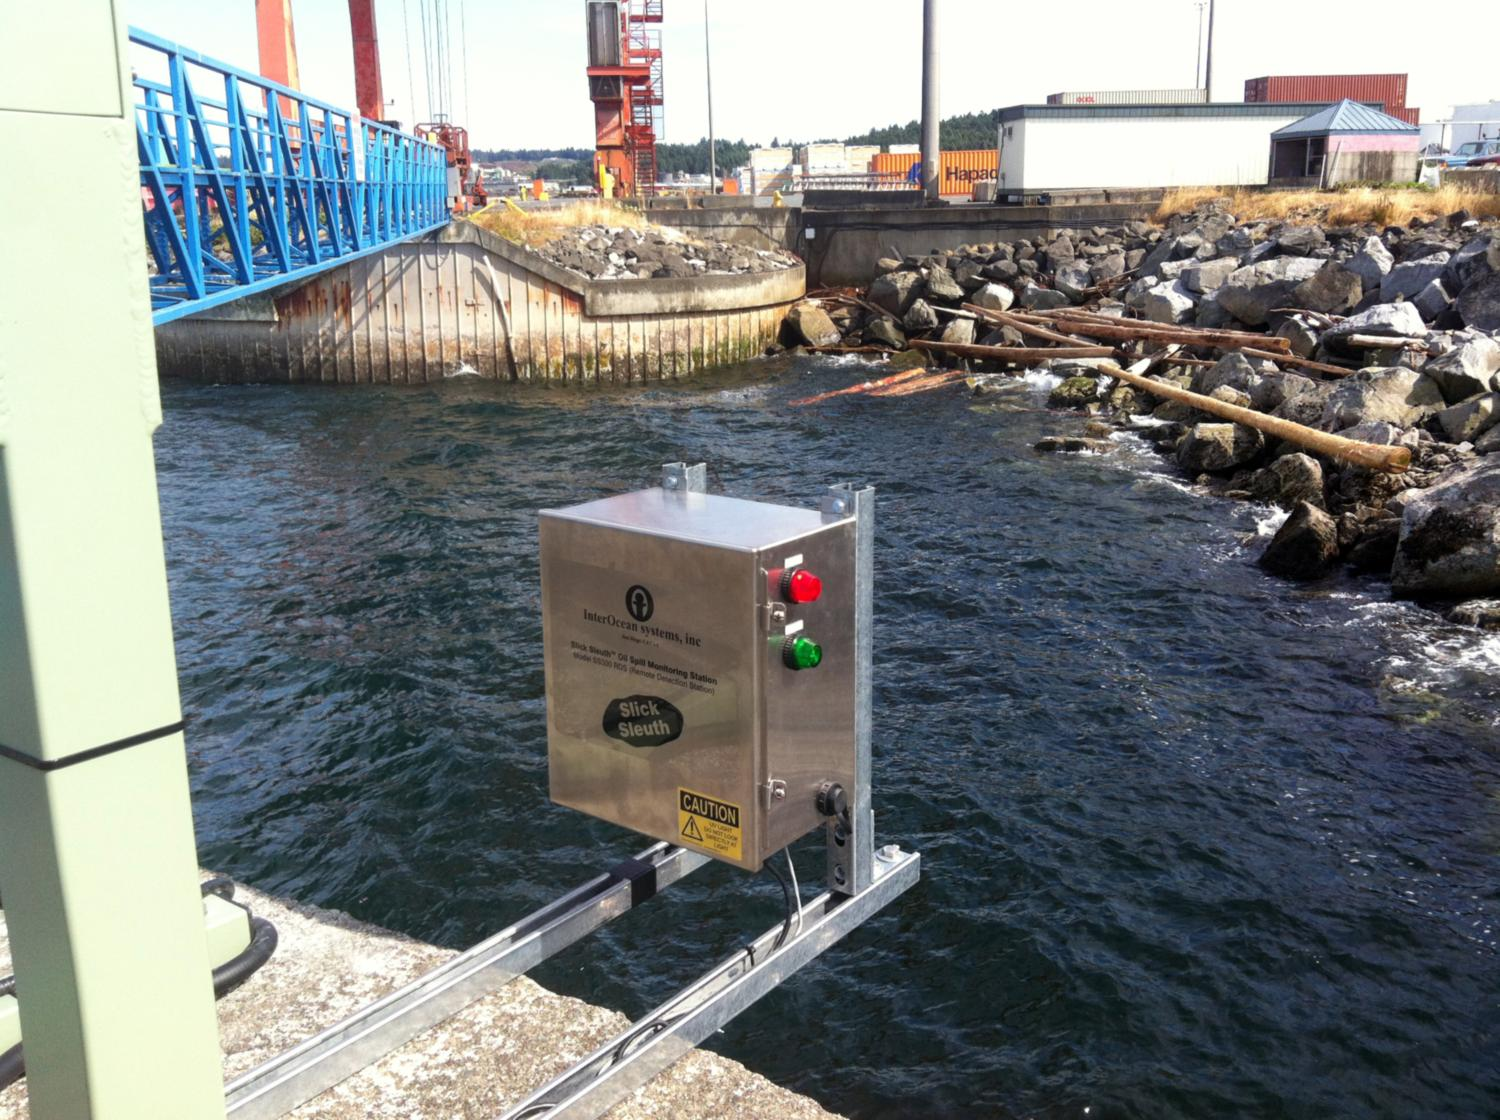 Slick Sleuth Pollution Monitoring at Port Nanaimo